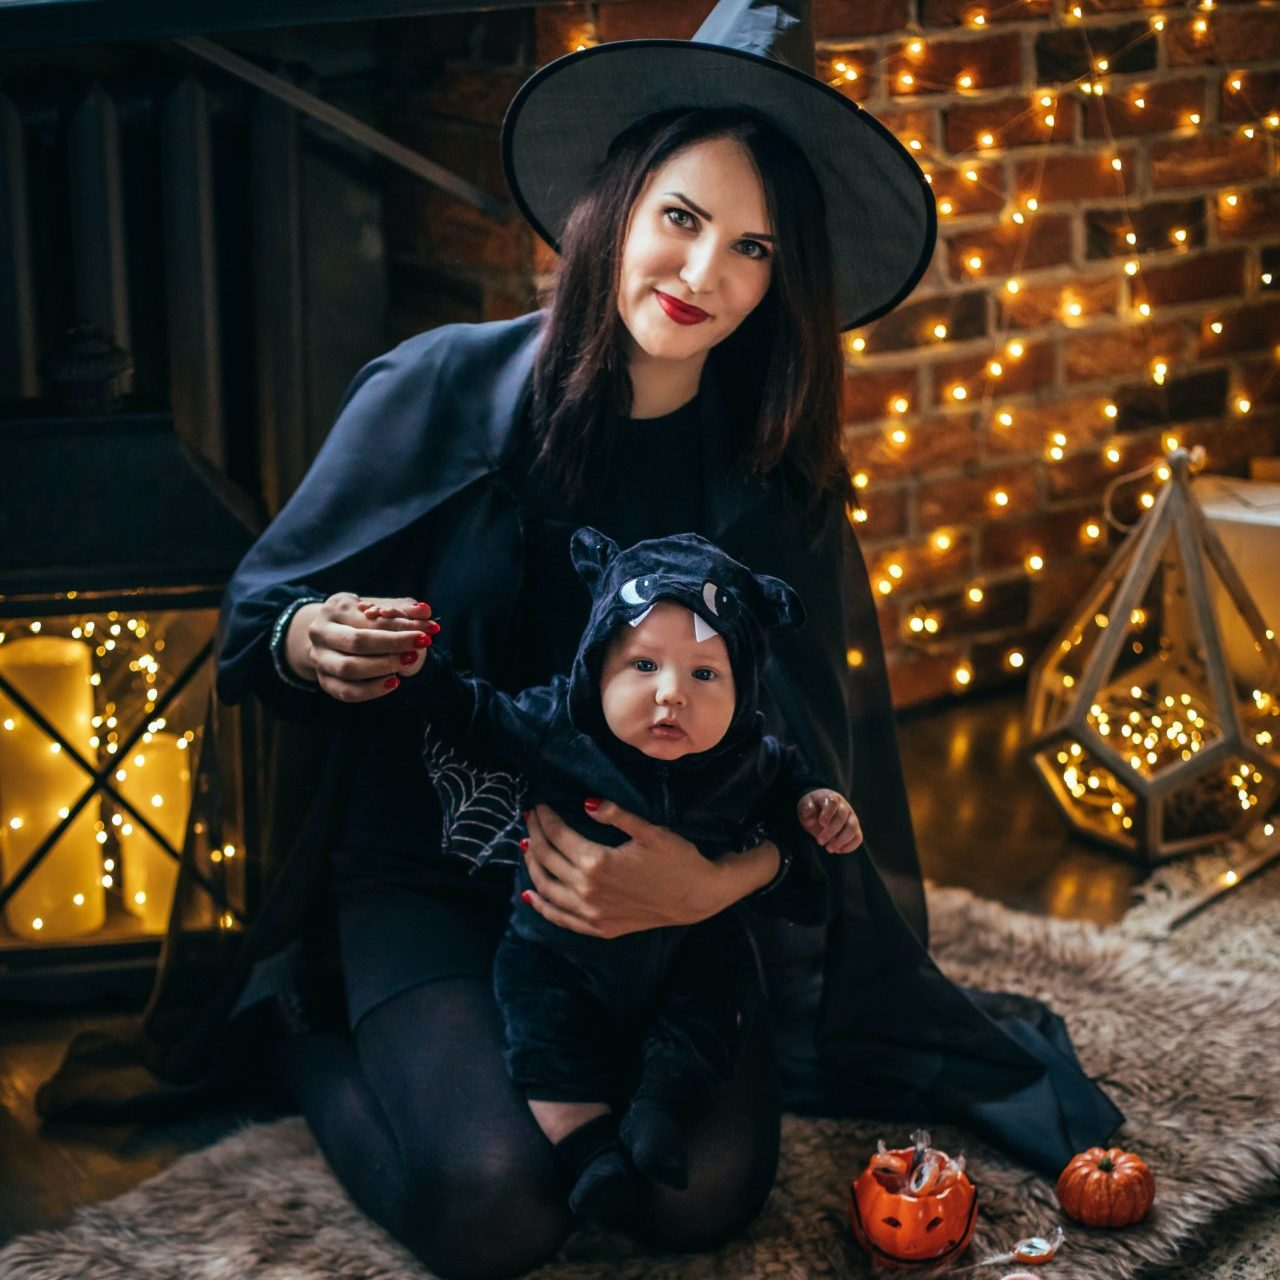 Witch costume with baby as cat (or bat)